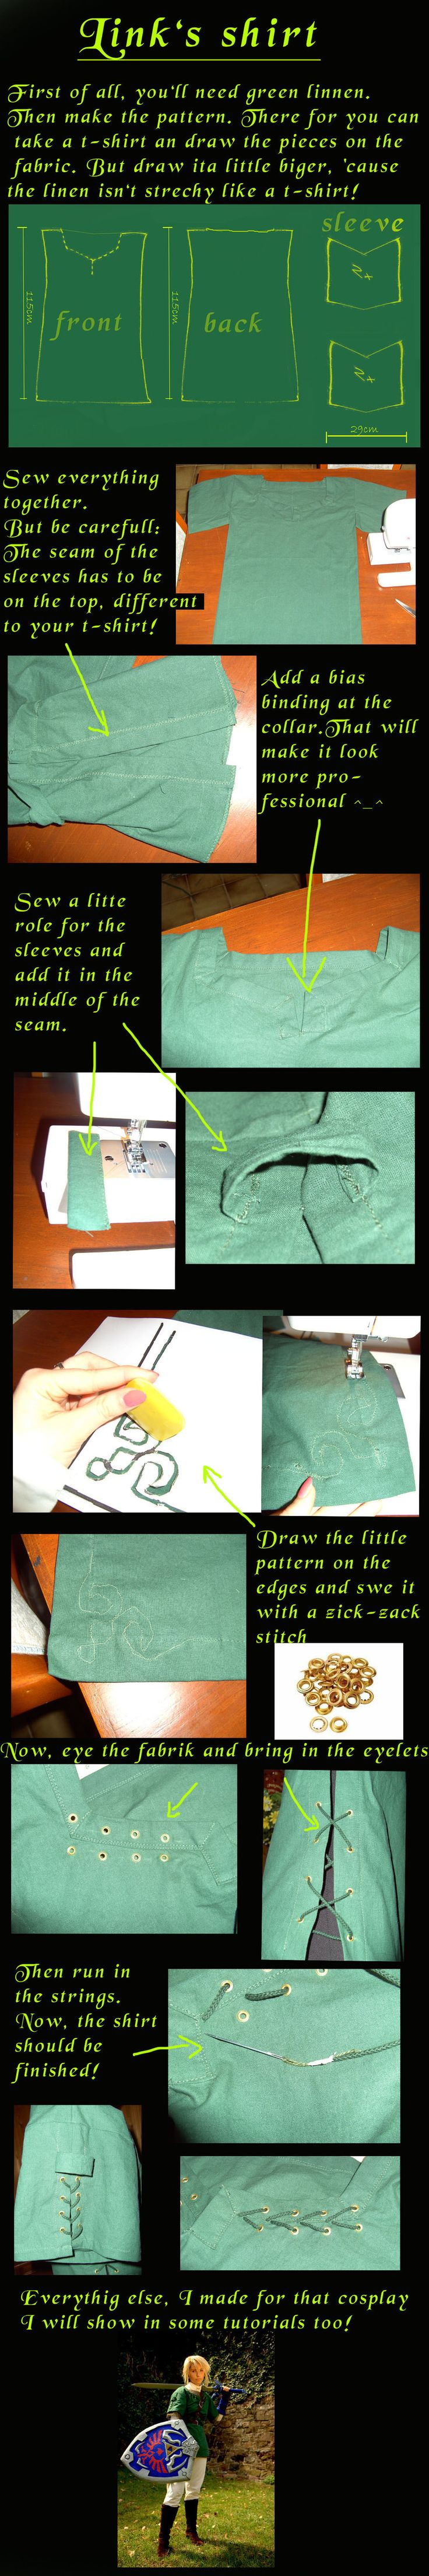 Tutorial, How to: Link's shirt by Eressea-sama.deviantart.com on @DeviantArt